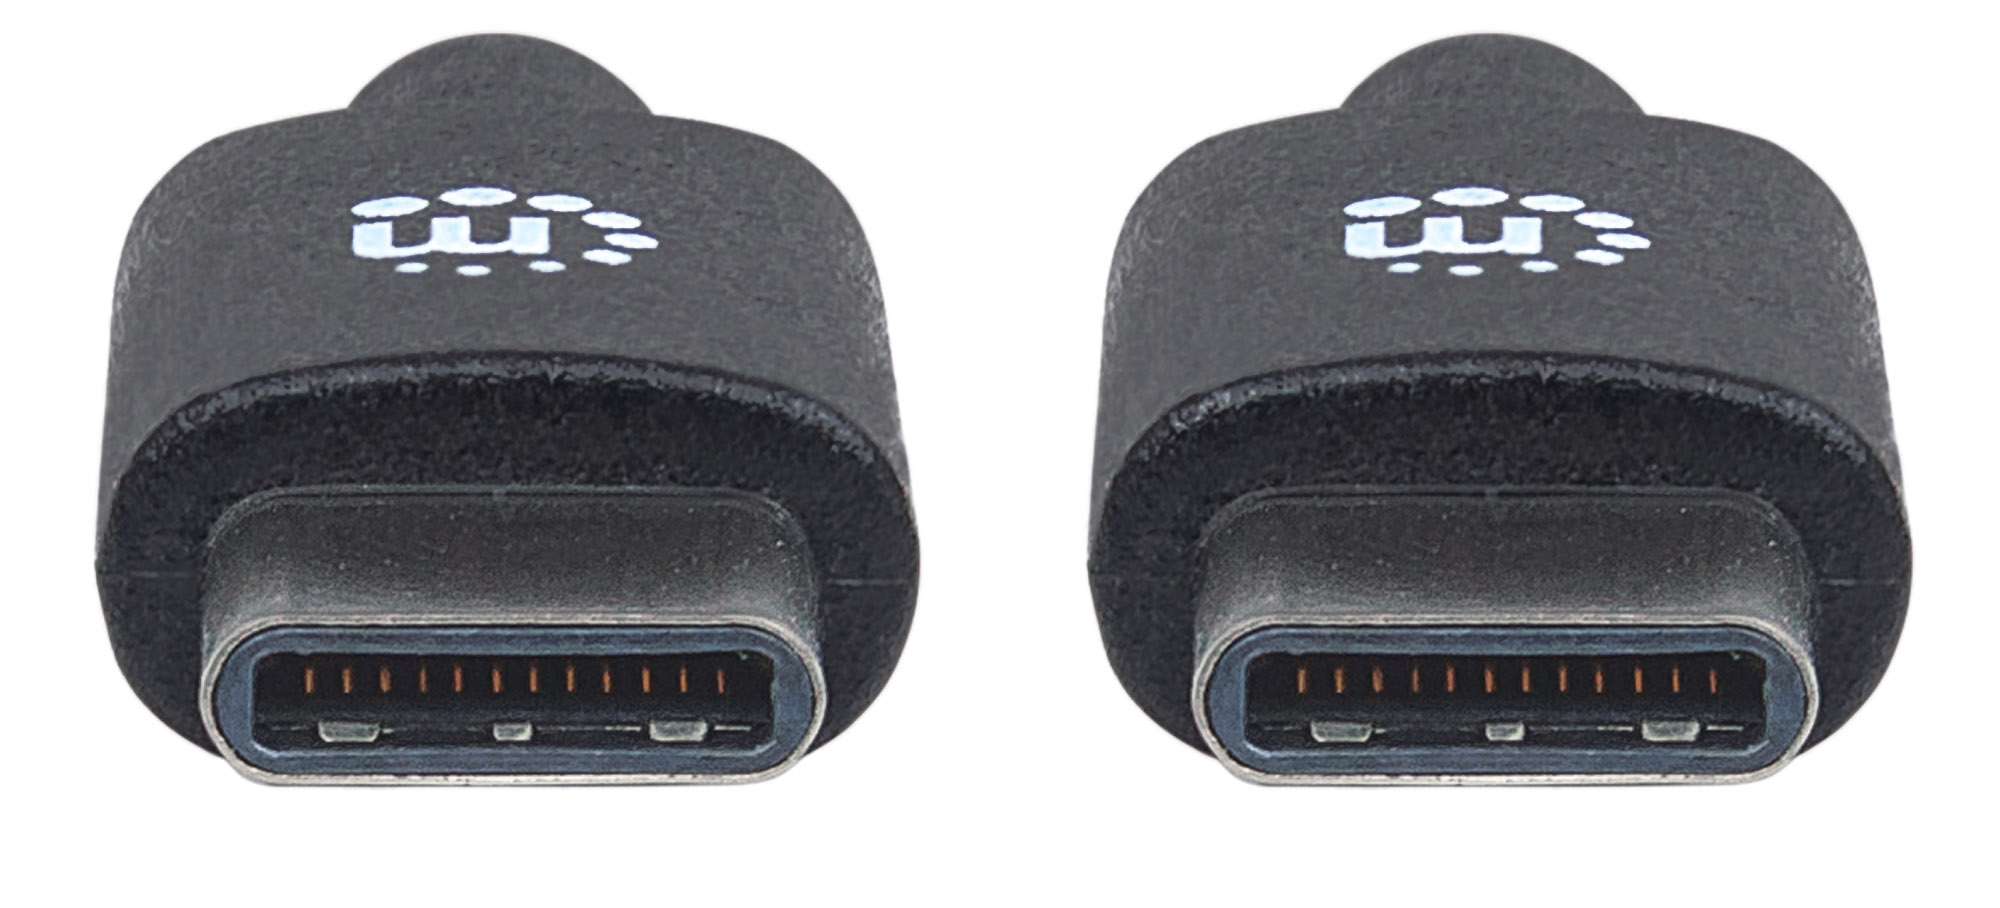 Hi-Speed USB C Device Cable